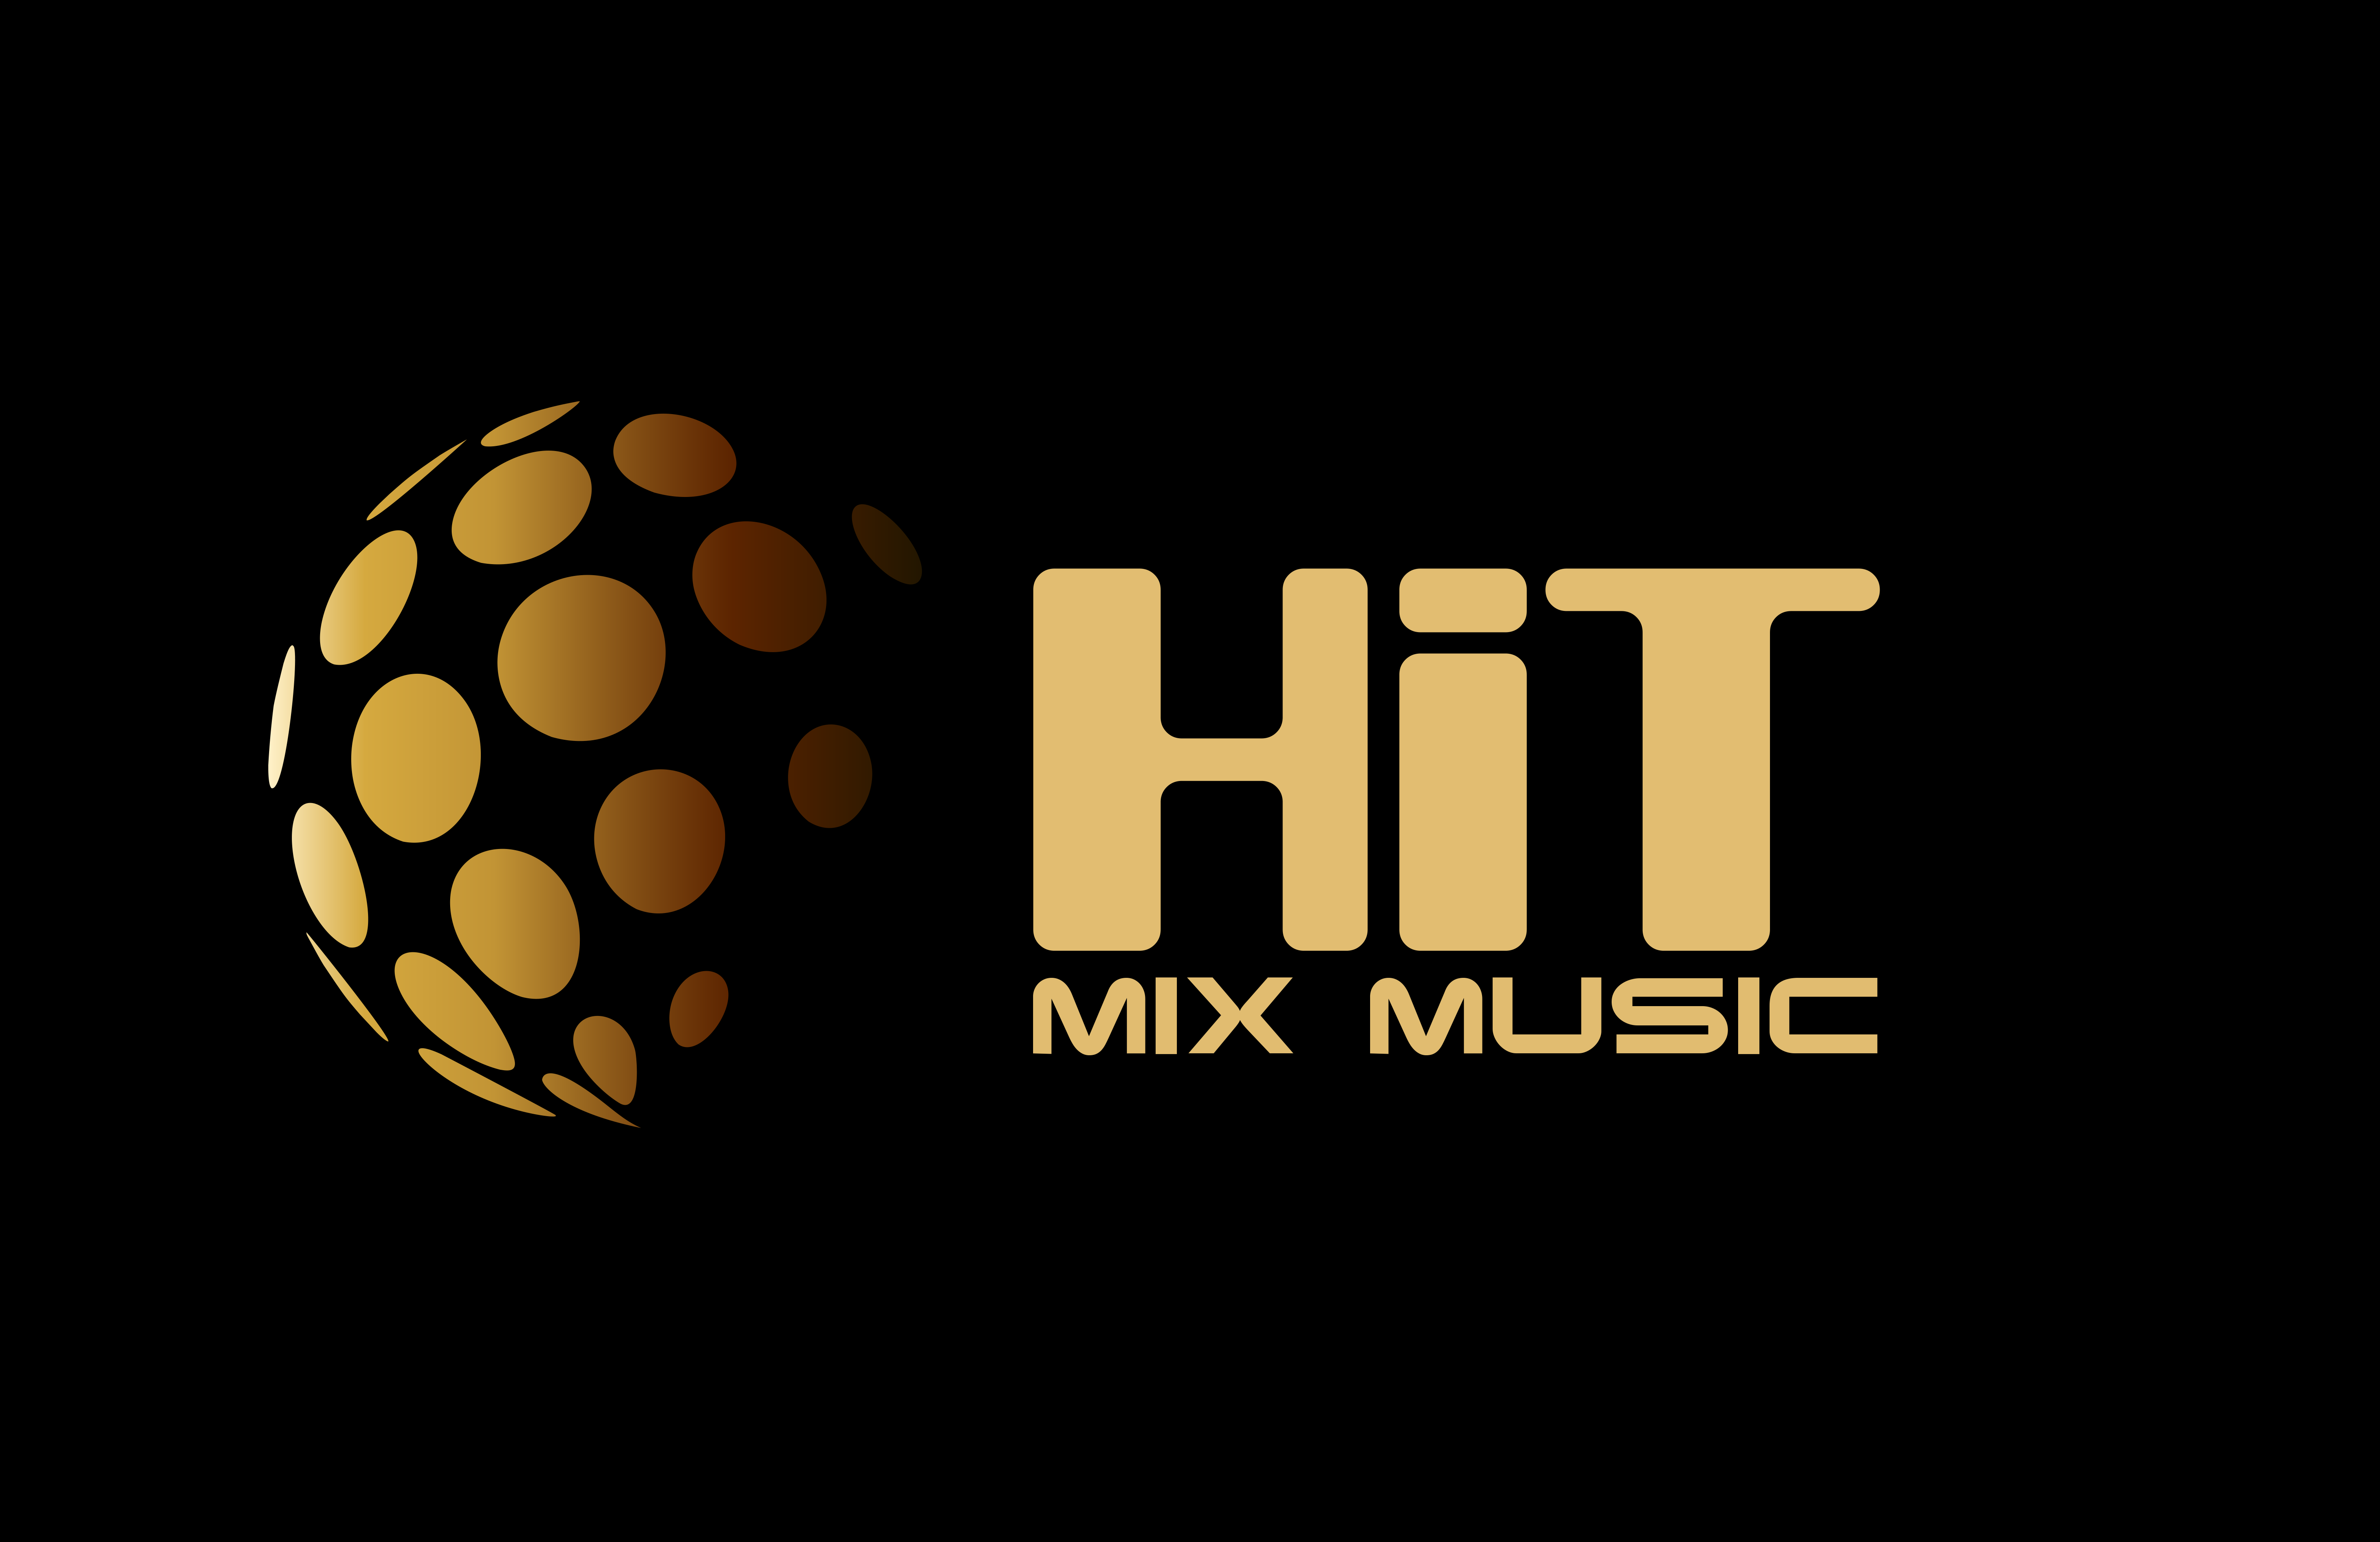 Xit Mix Music